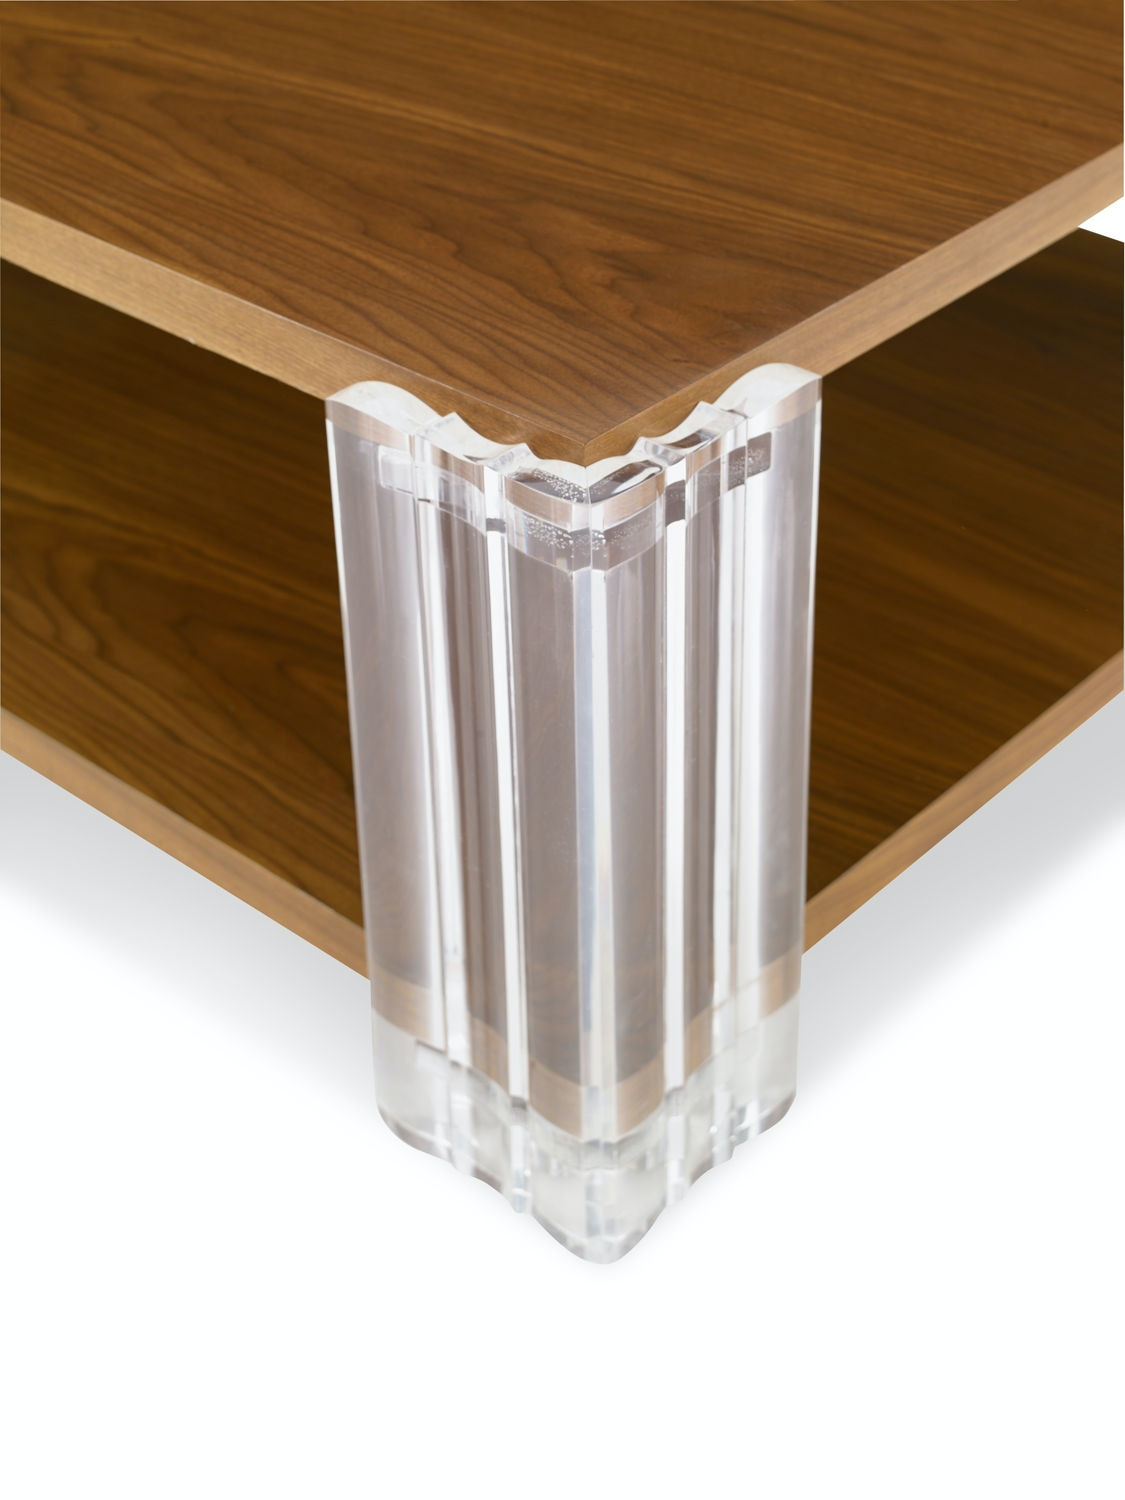 Kravet Walnut And Acrylic Cocktail Table OT850